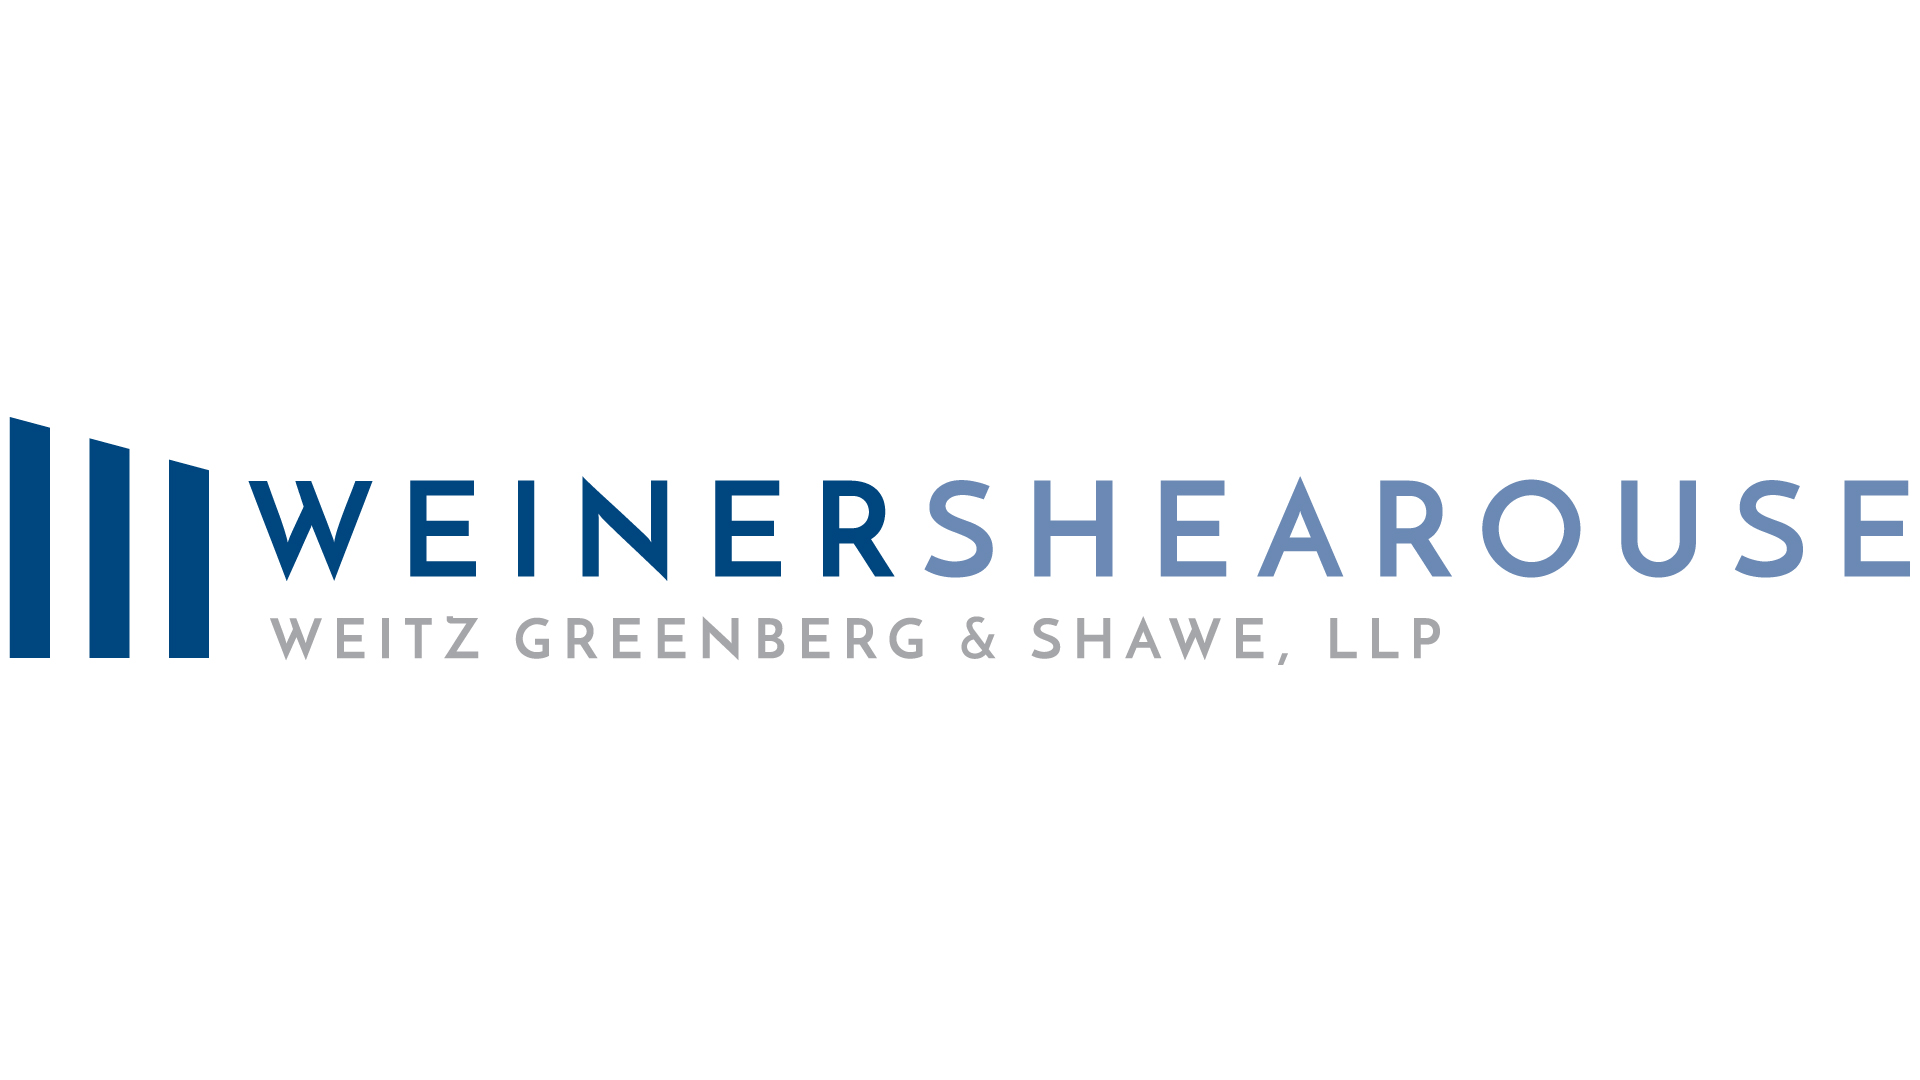 Weiner, Shearouse, Weitz, Greenberg and Shawe Branding